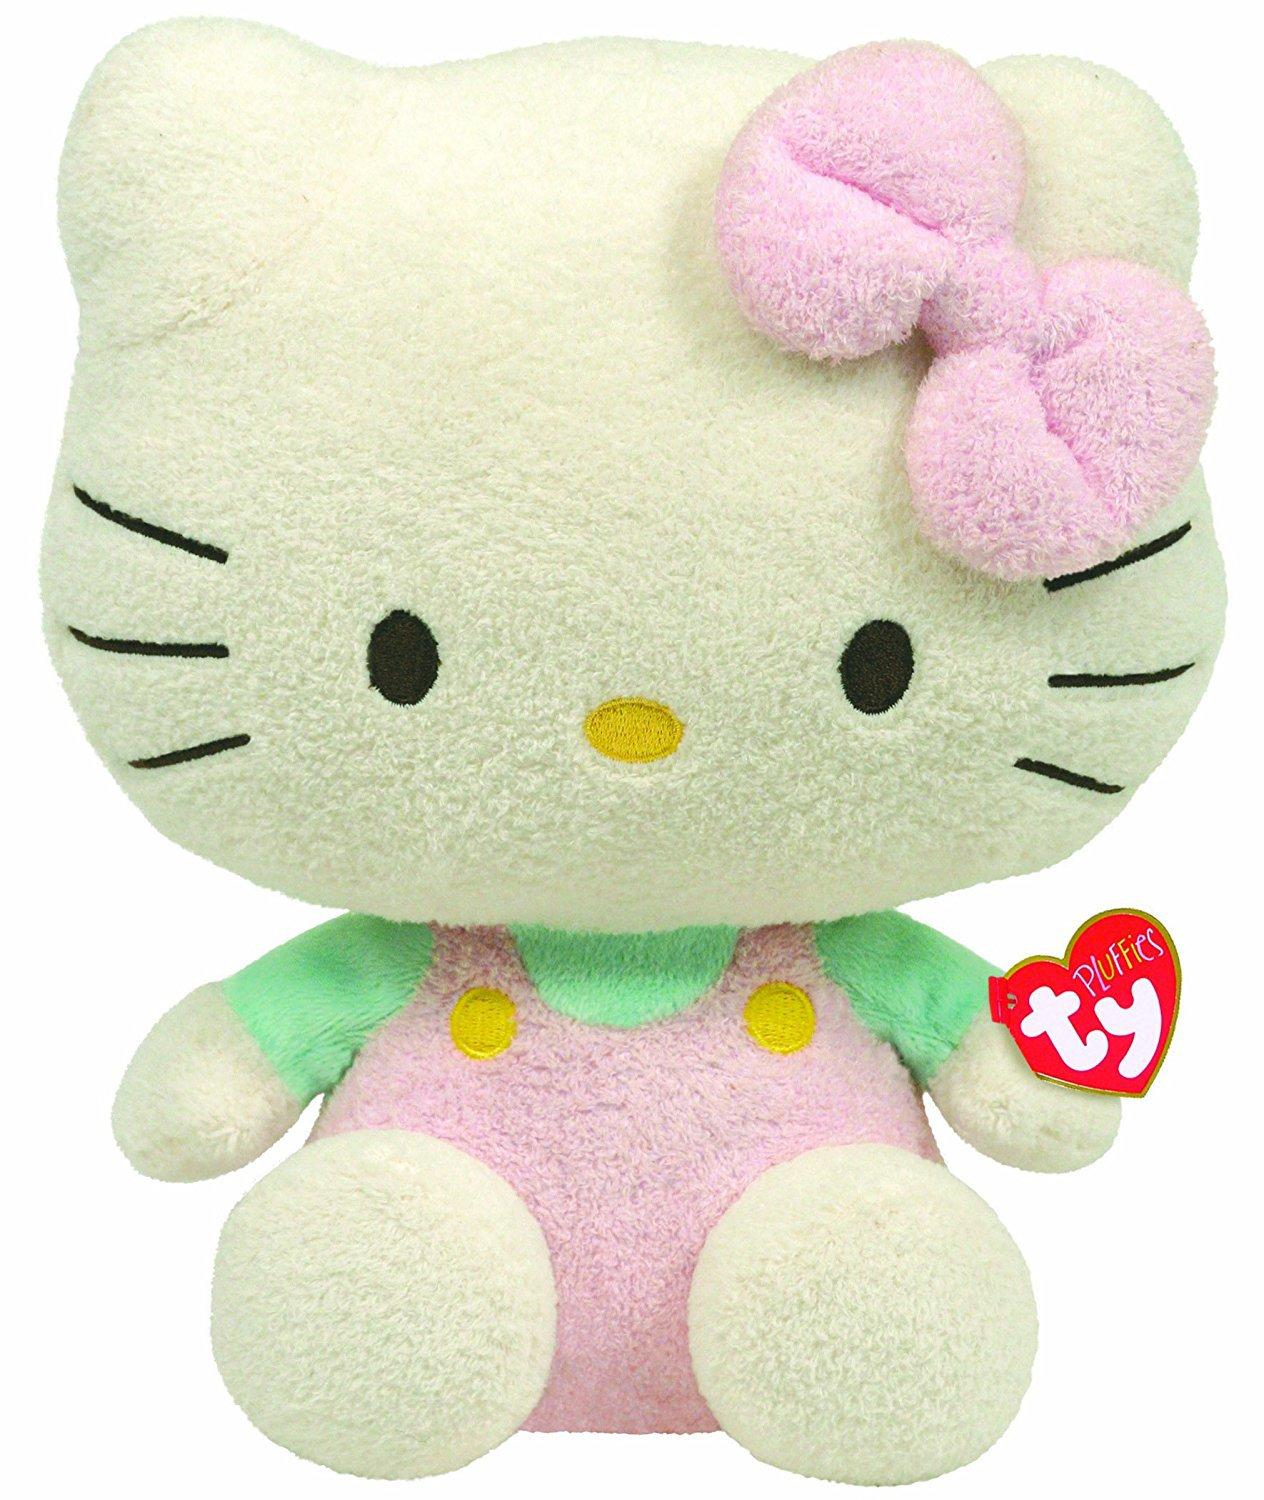 Ty Pluffies Hello Kitty - Pink Overalls With Mint Shirt (Medium) 32148